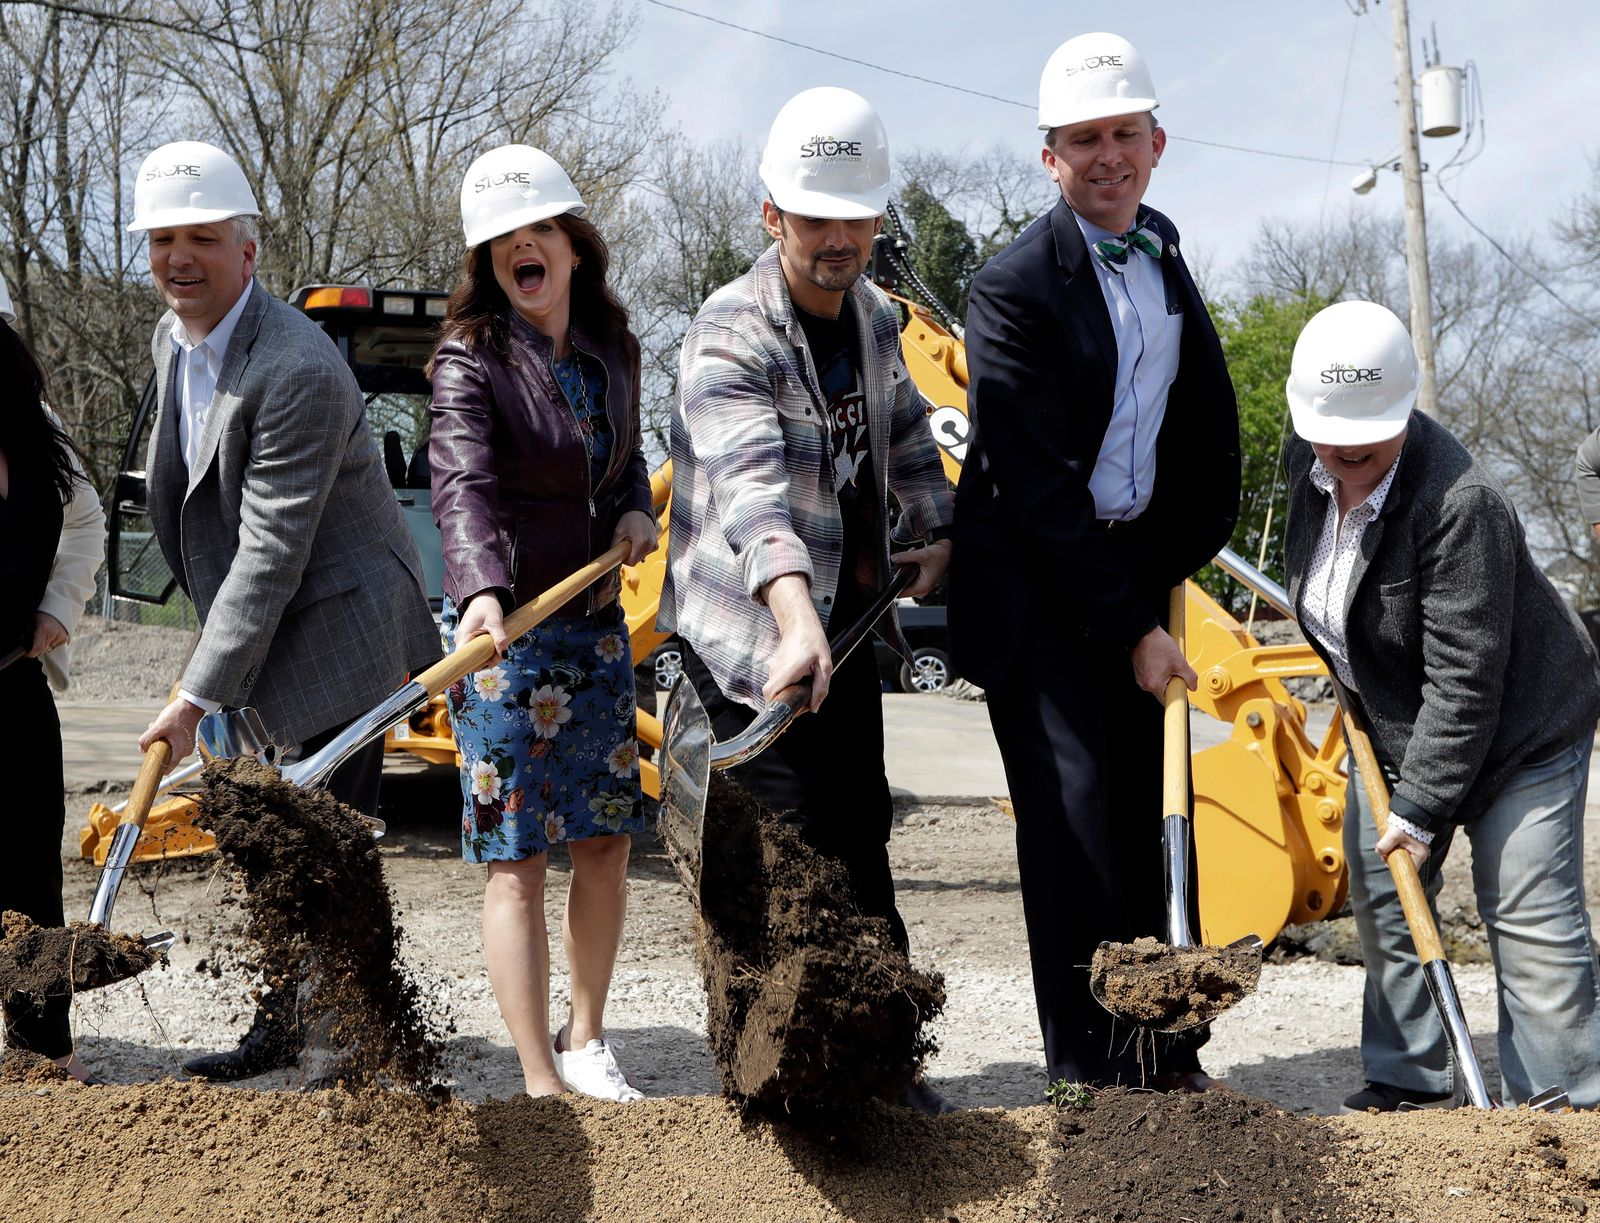 Country music star Brad Paisley, center, and his wife, actress Kimberly Williams-Paisley, second from left, take part in the groundbreaking ceremony for The Store, a free grocery store for people in need, Wednesday, April 3, 2019, in Nashville, Tenn. (AP Photo/Mark Humphrey)